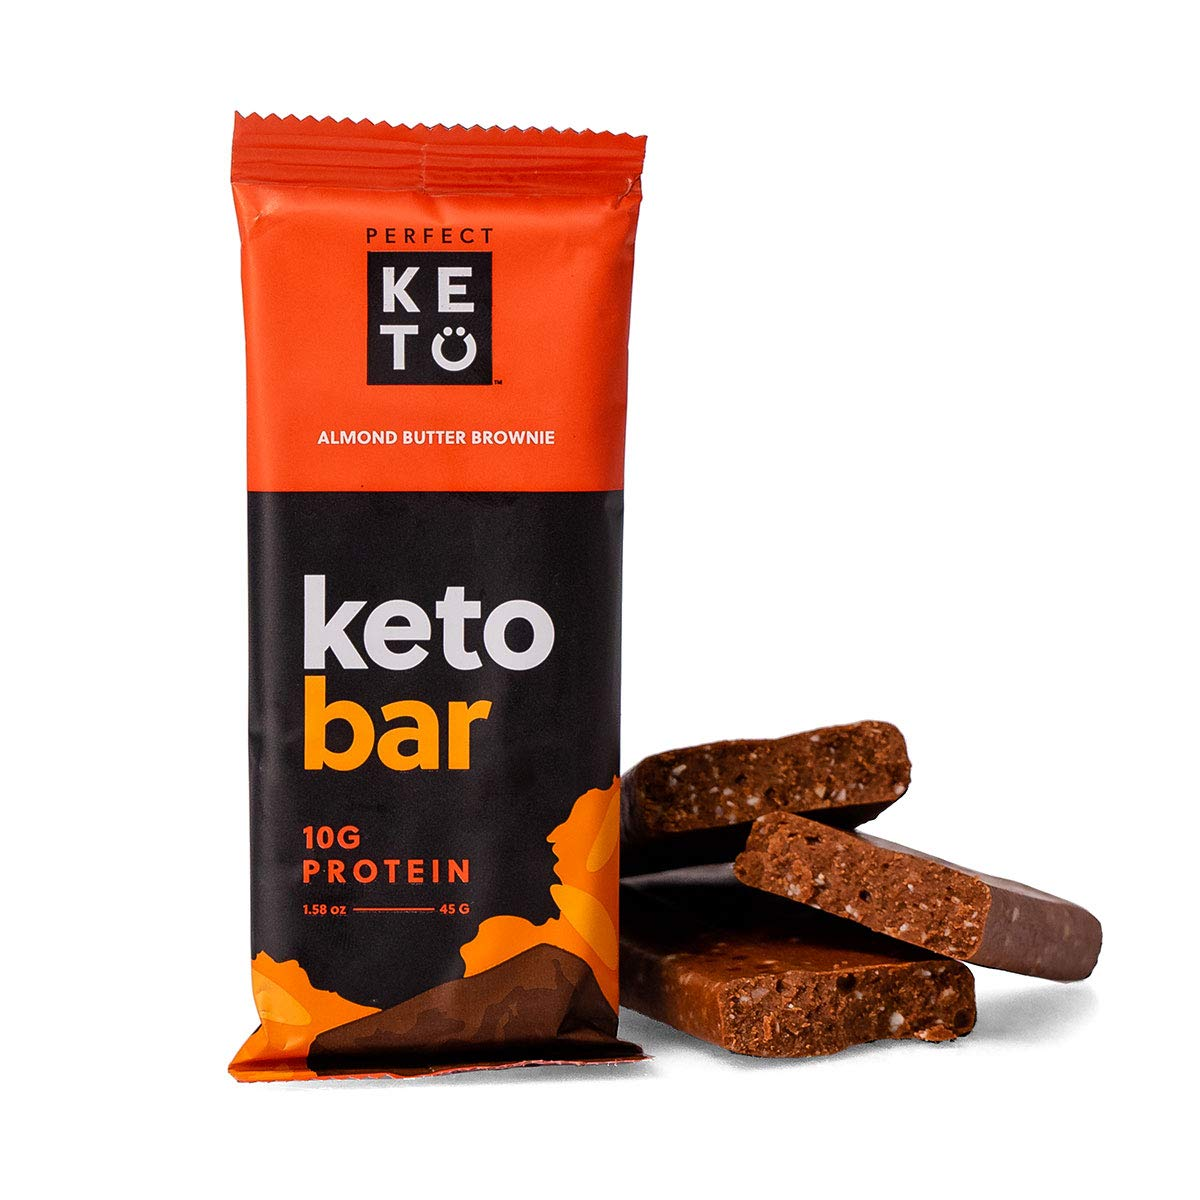 Perfect Keto Bar, Keto Snack (12 Count), No Added Sugar. 10g of Protein, Coconut Oil, and Collagen, with a Touch of Sea Salt and Stevia. (12 Bars, Almond Butter) by Perfect Keto